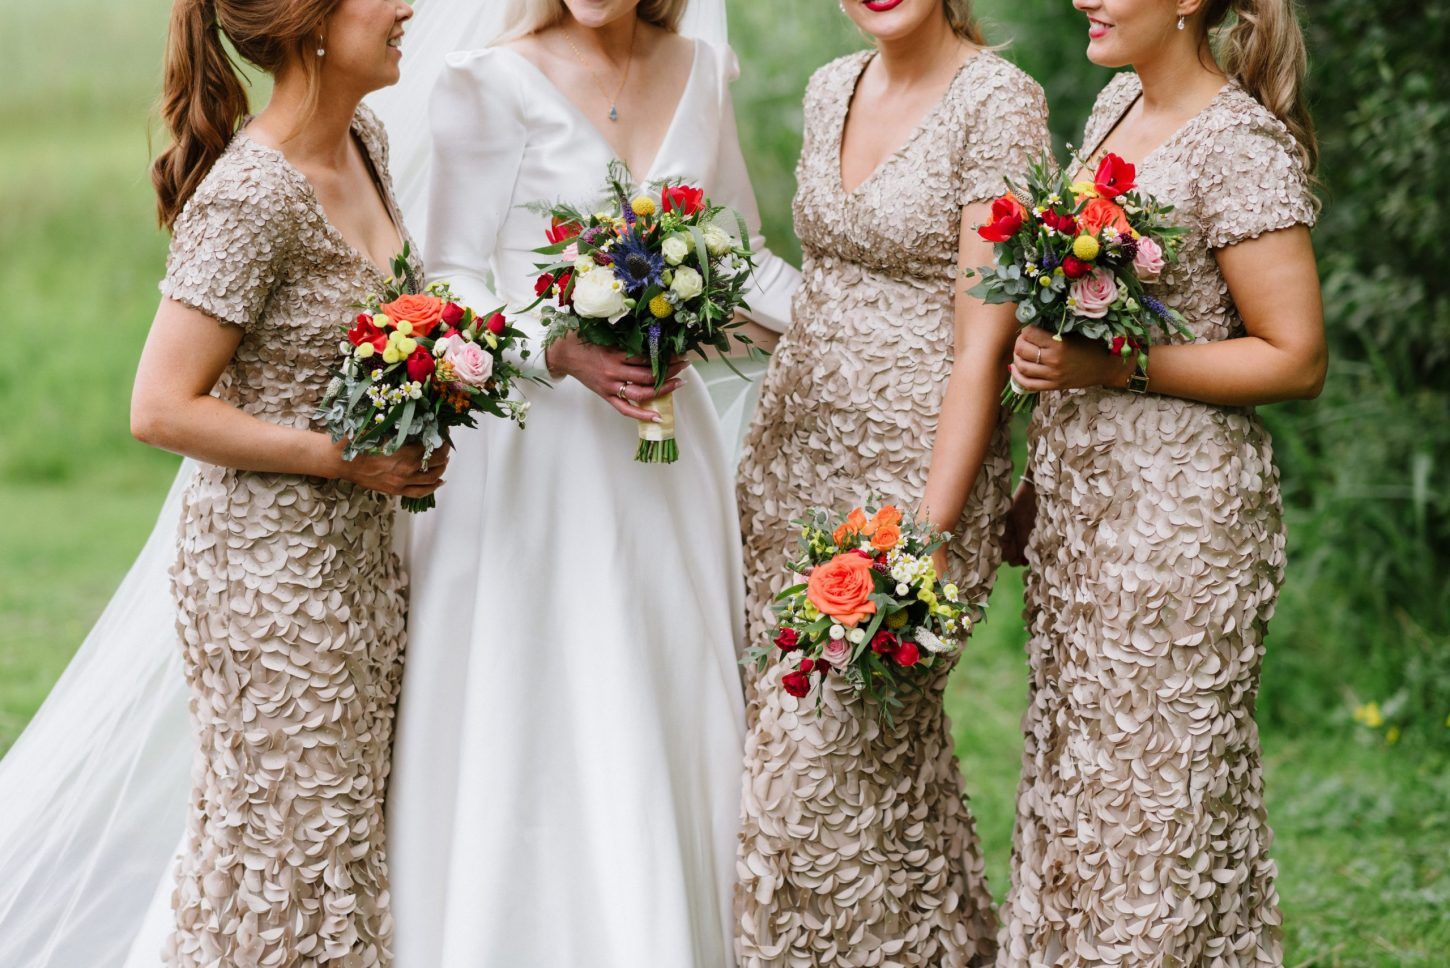 dress details and flowers